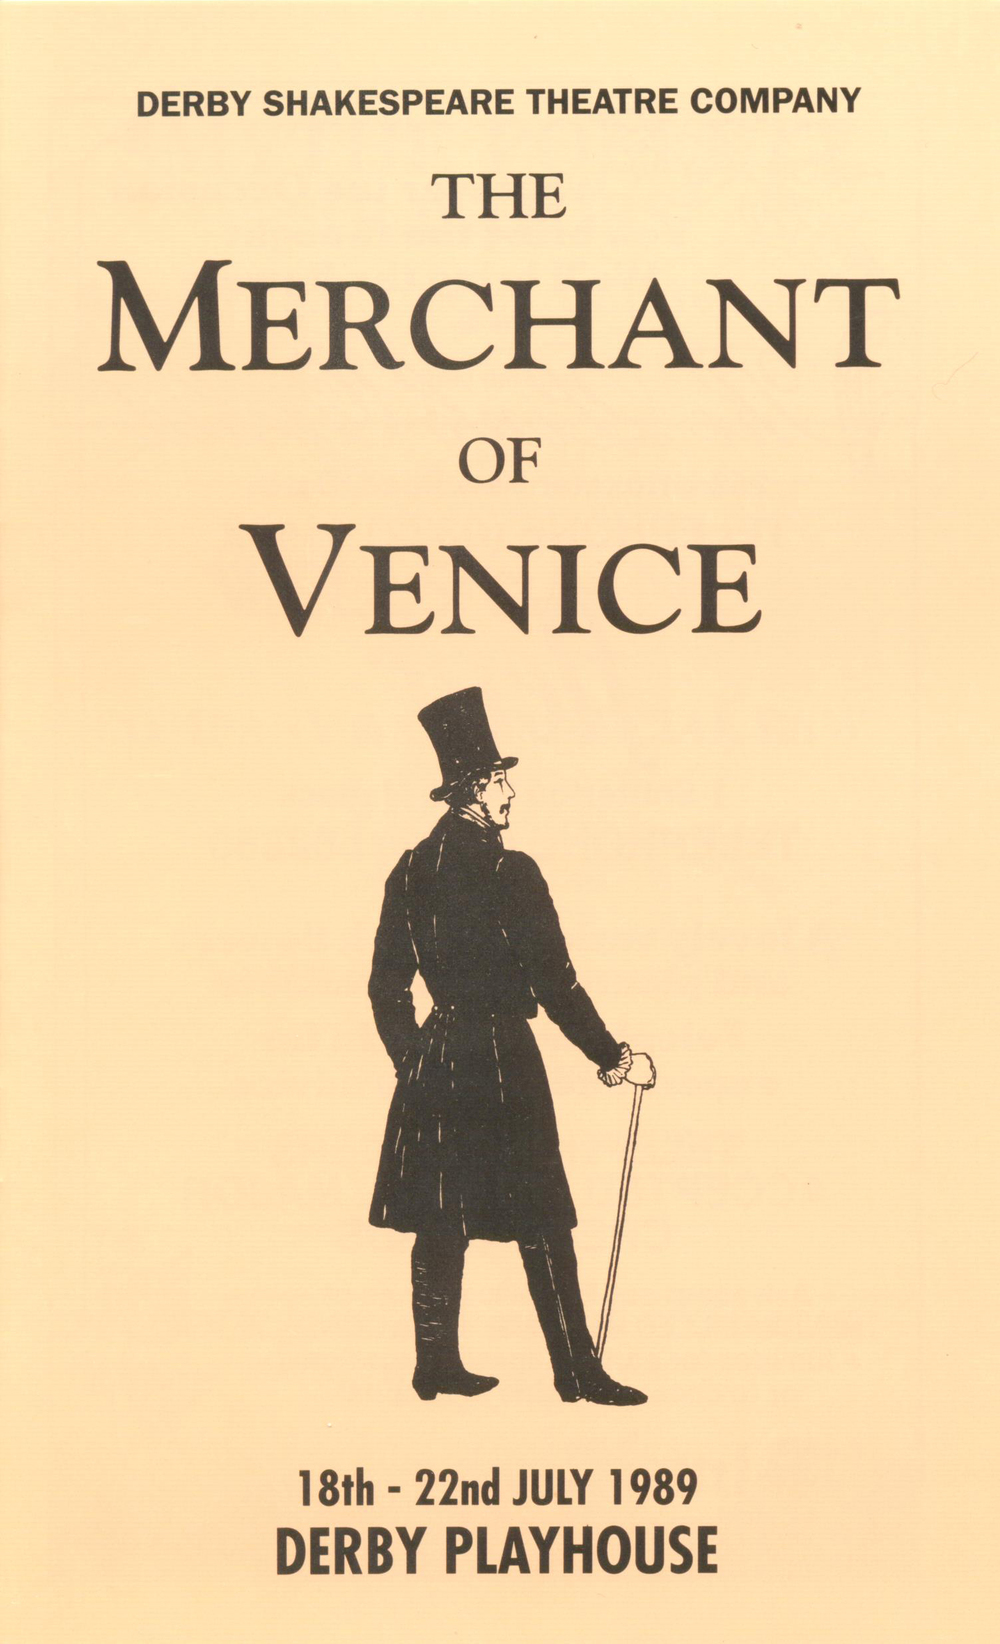 the stereotypes in shakespeares the merchant of venice